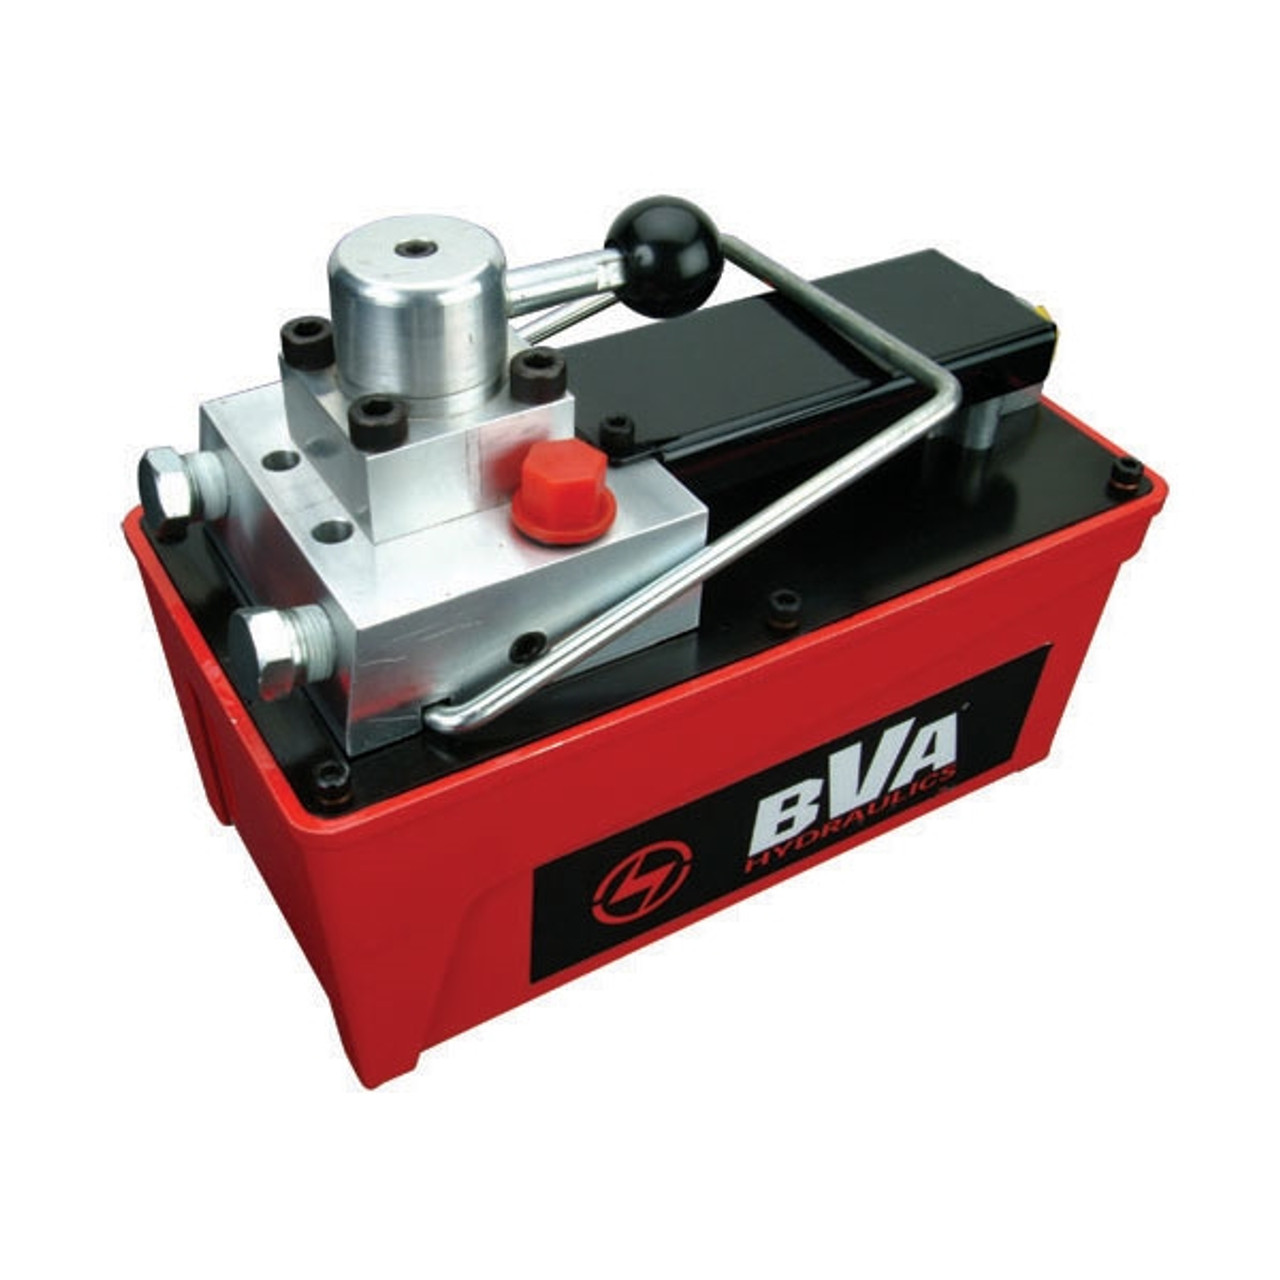 BVA PA1500M 10,000 PSI Double Acting Air Pump with 4-way Control Valve